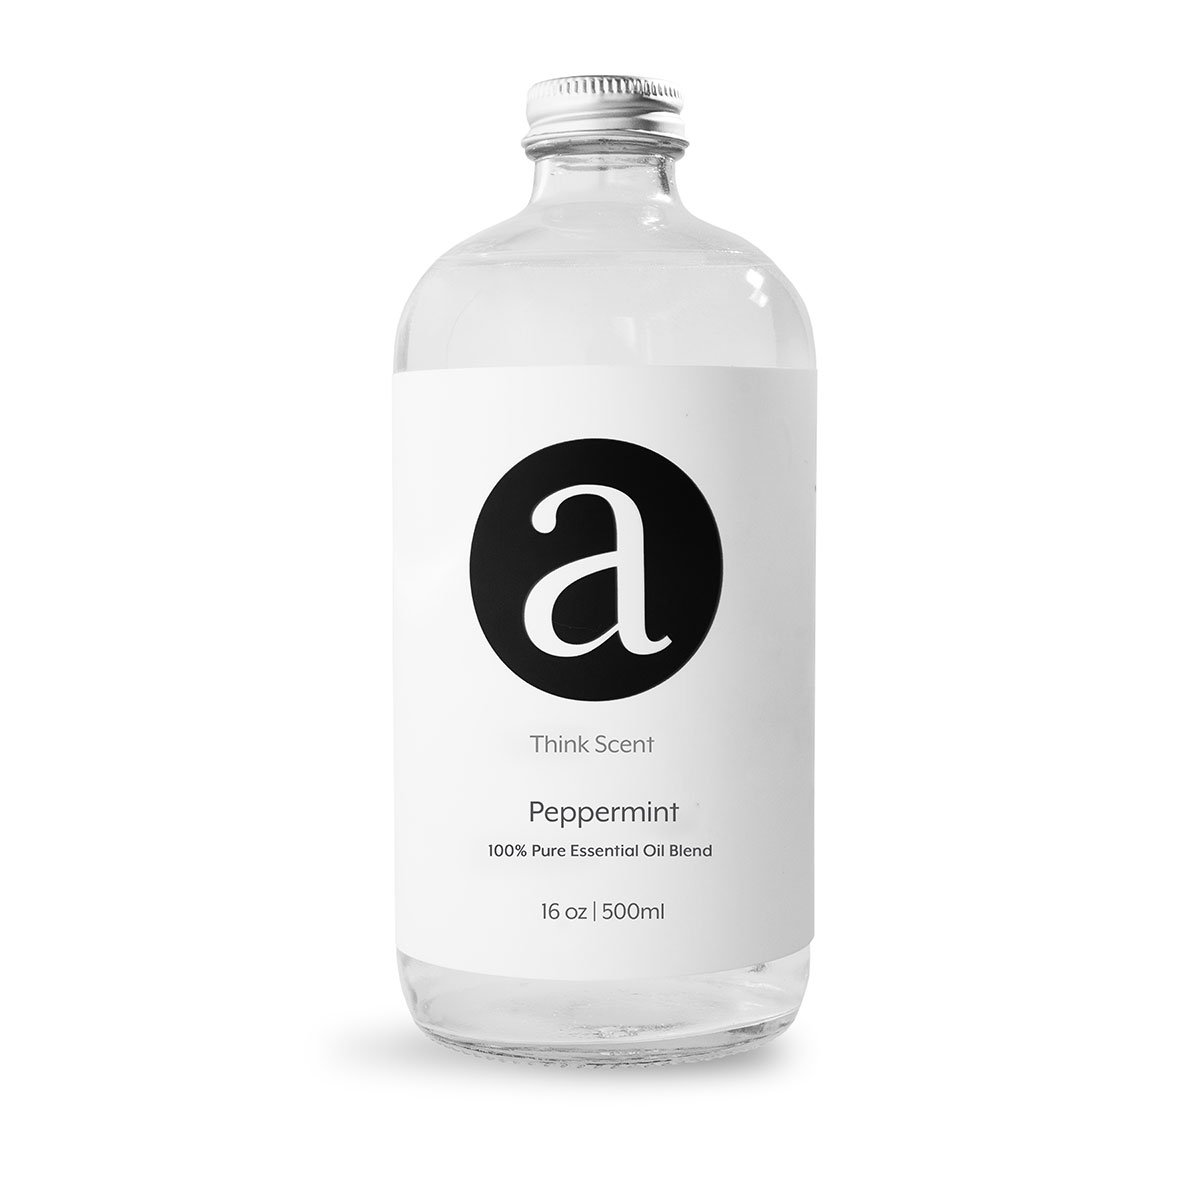 (Peppermint) Aroma / Fragrance Oil For AromaTech Air Freshener Scent Diffuser (Half Gallon)